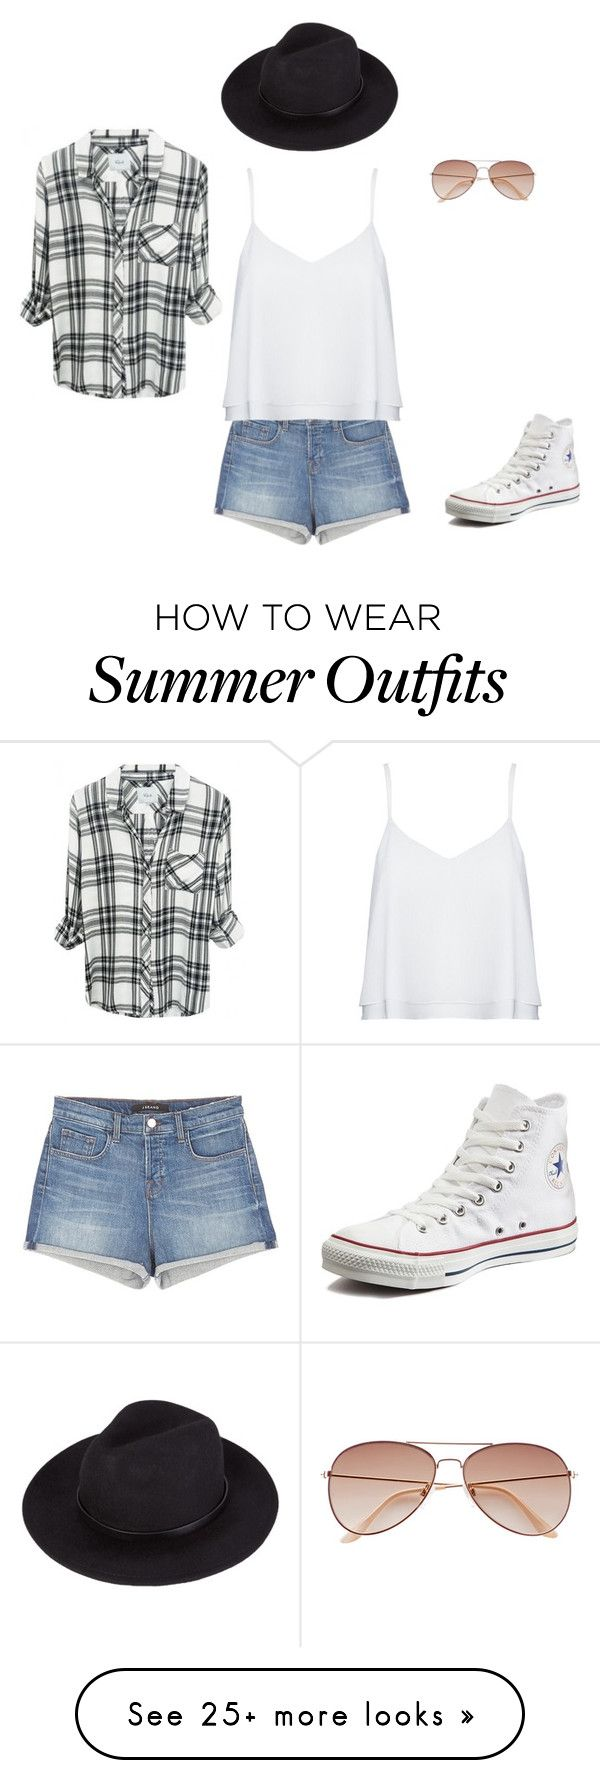 """""""Summer outfit"""" by xsilverbansheex on Polyvore featuring J Brand, Alice + Olivia, H&M and Converse"""